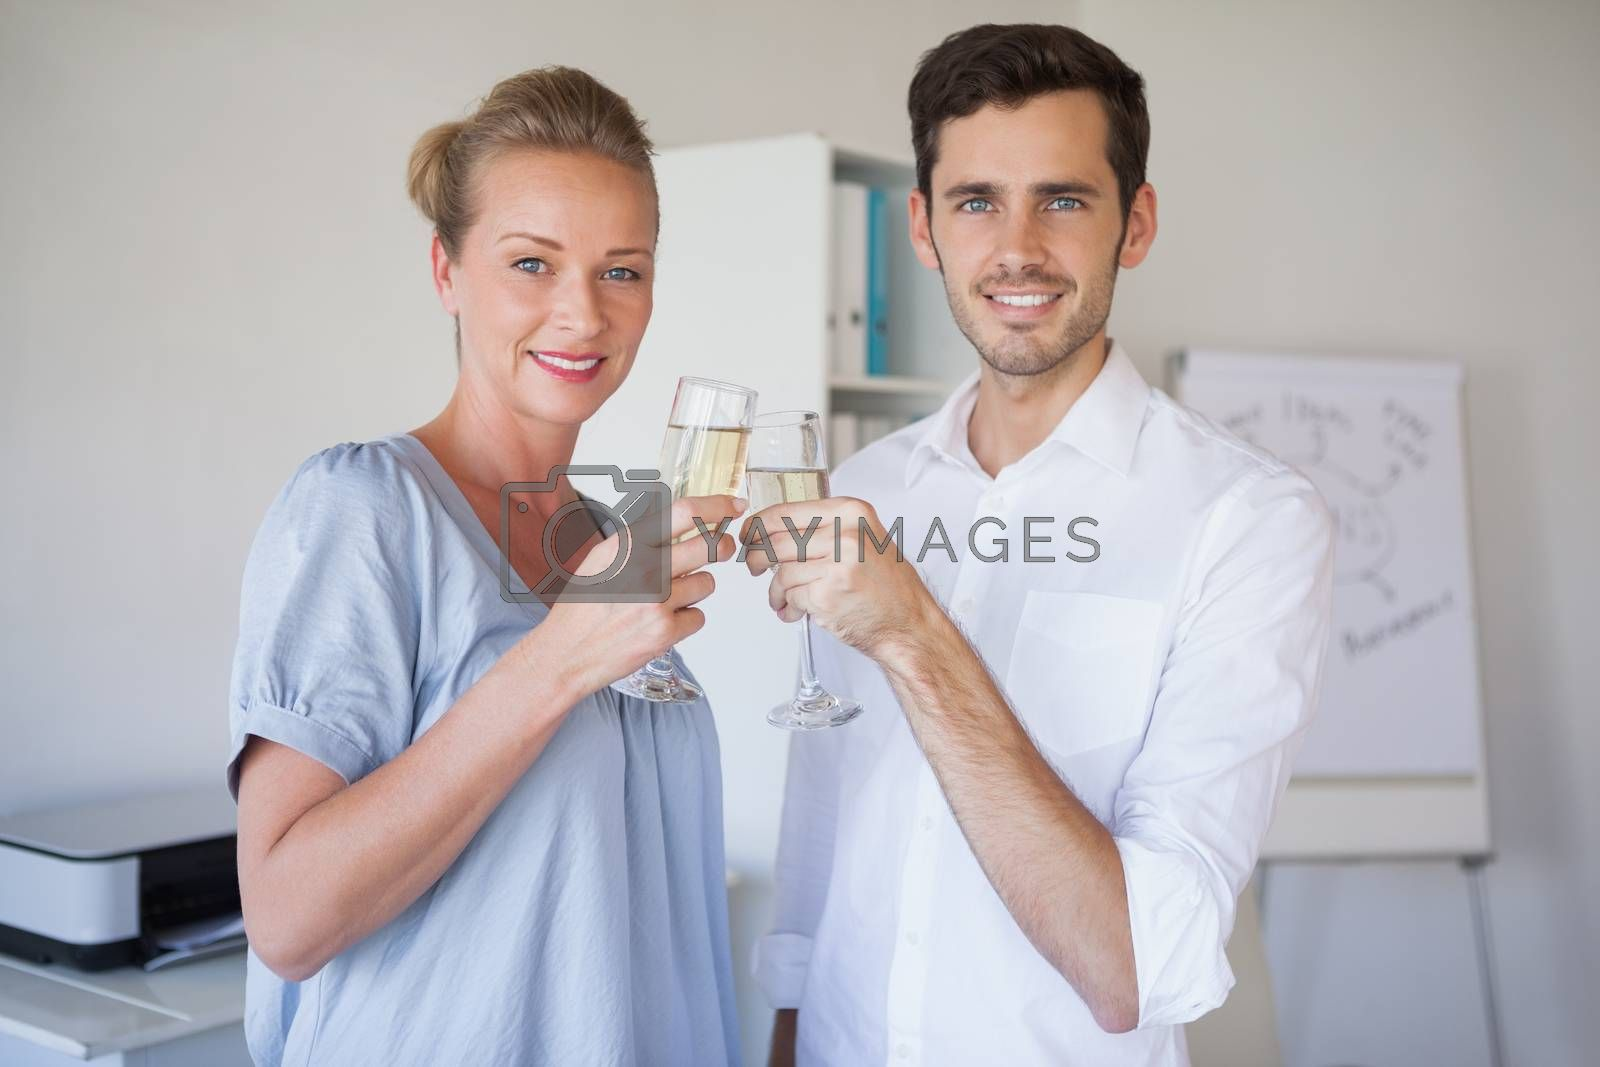 Royalty free image of Casual business team smiling at camera toasting with champagne by Wavebreakmedia